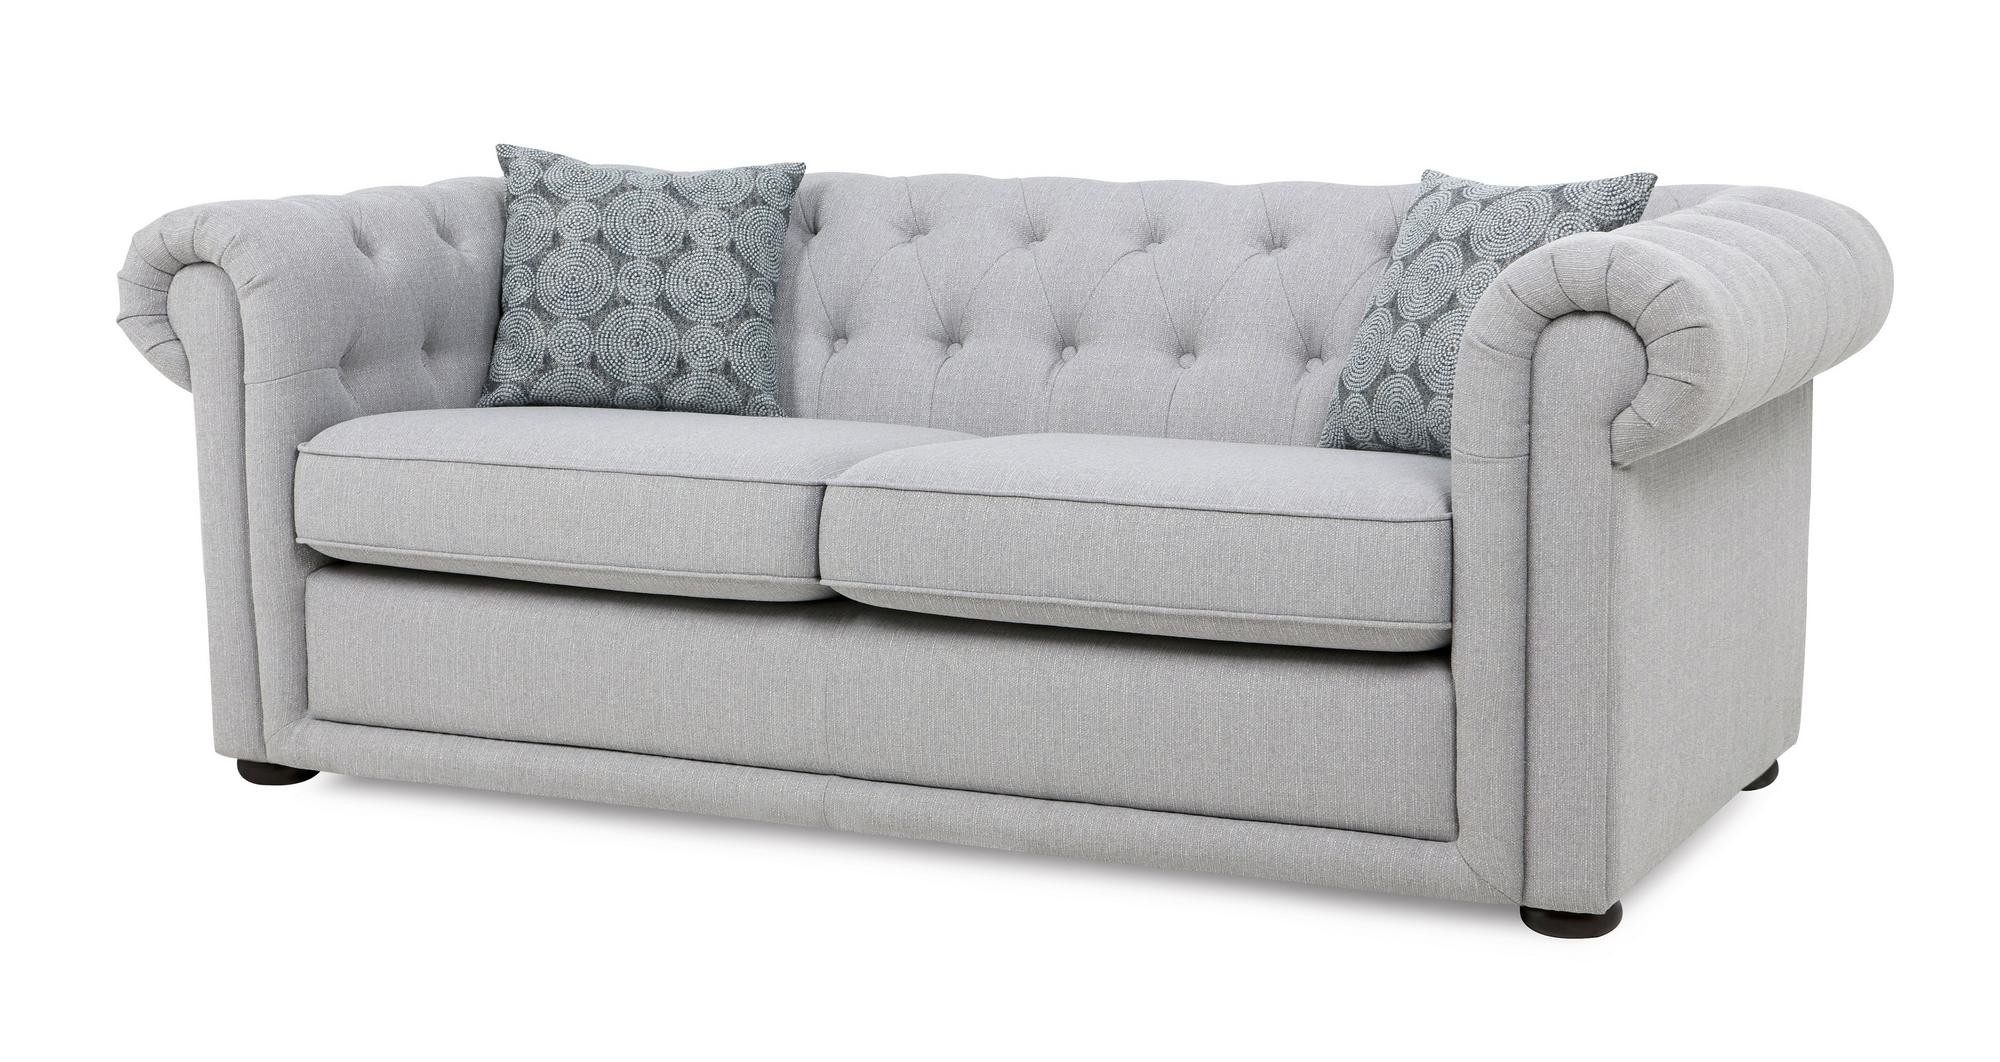 Dfs Chester Ash Fabric Plain 3 Seater 2 Seater Sofa Bed